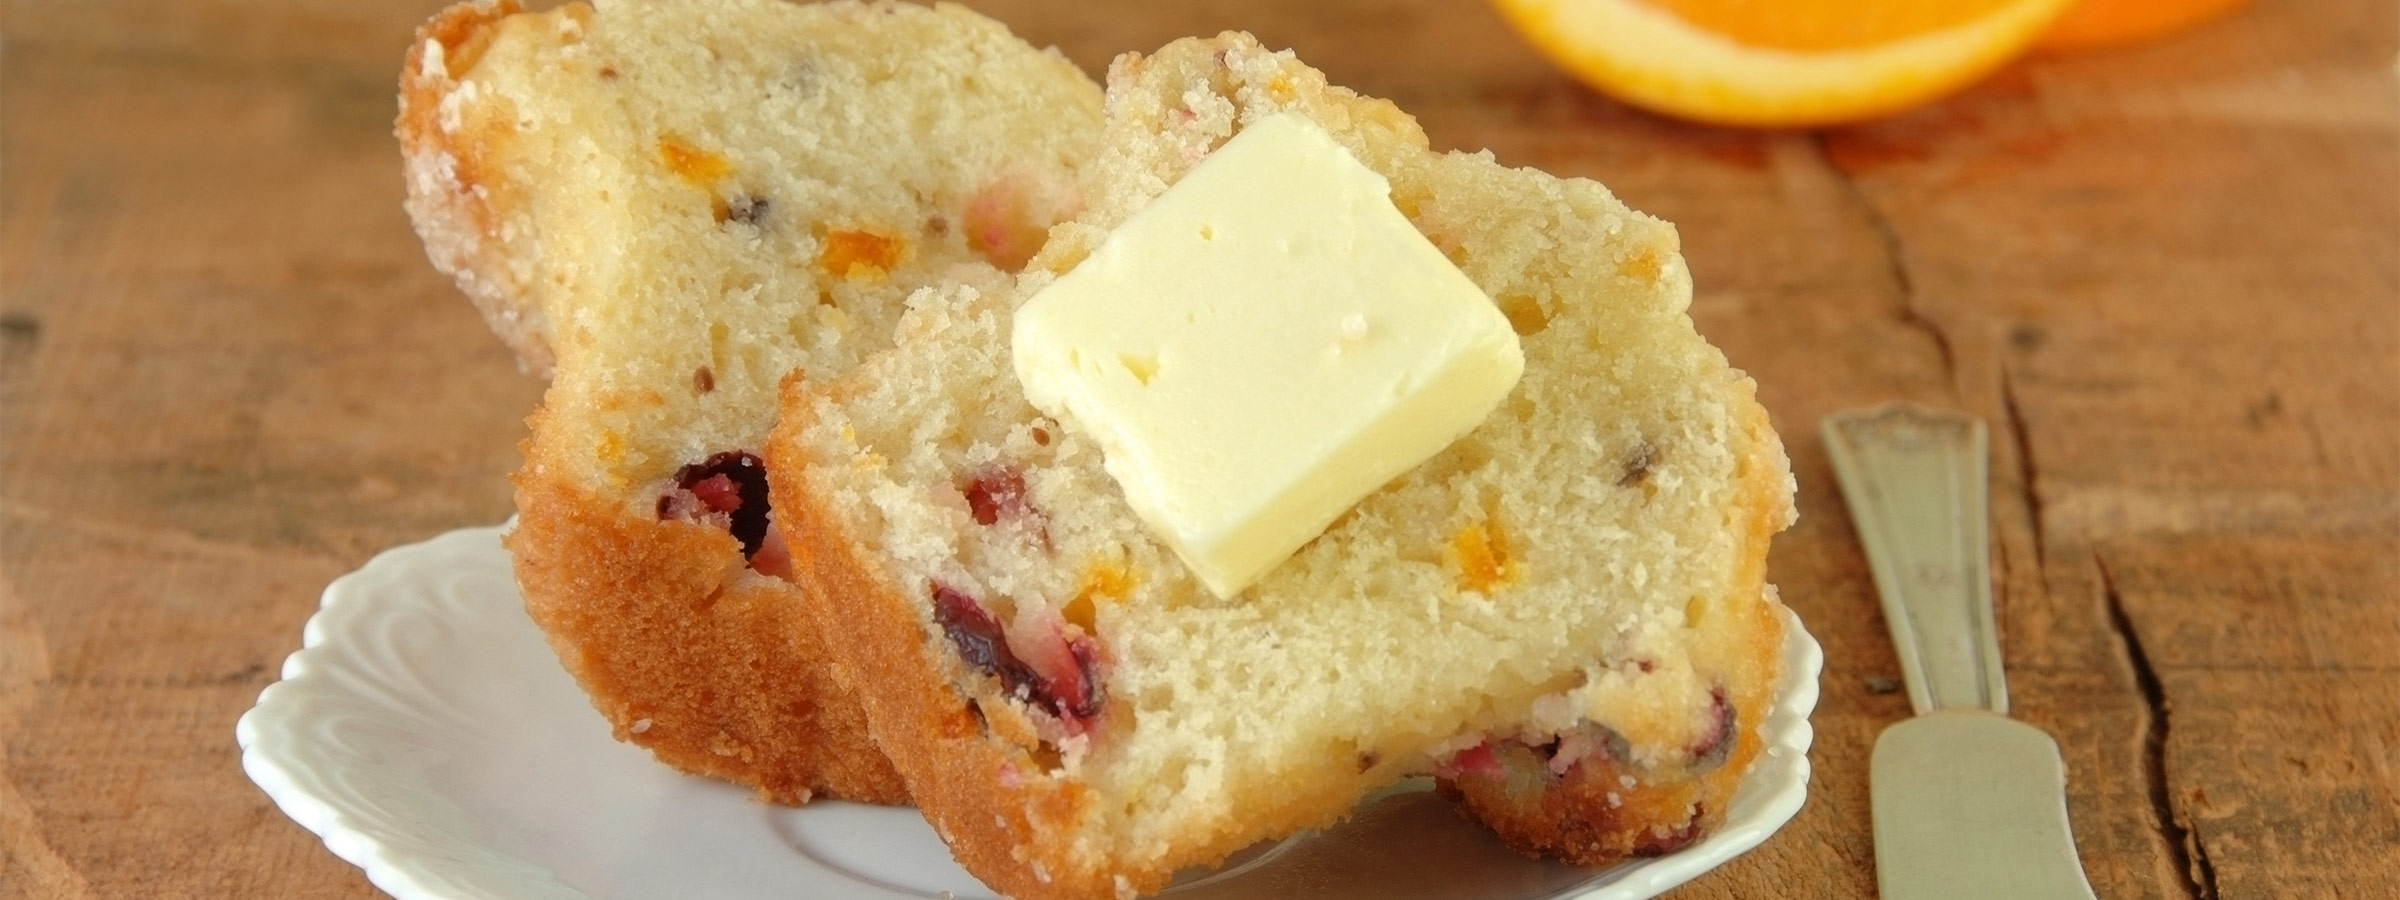 orange cran muffin image